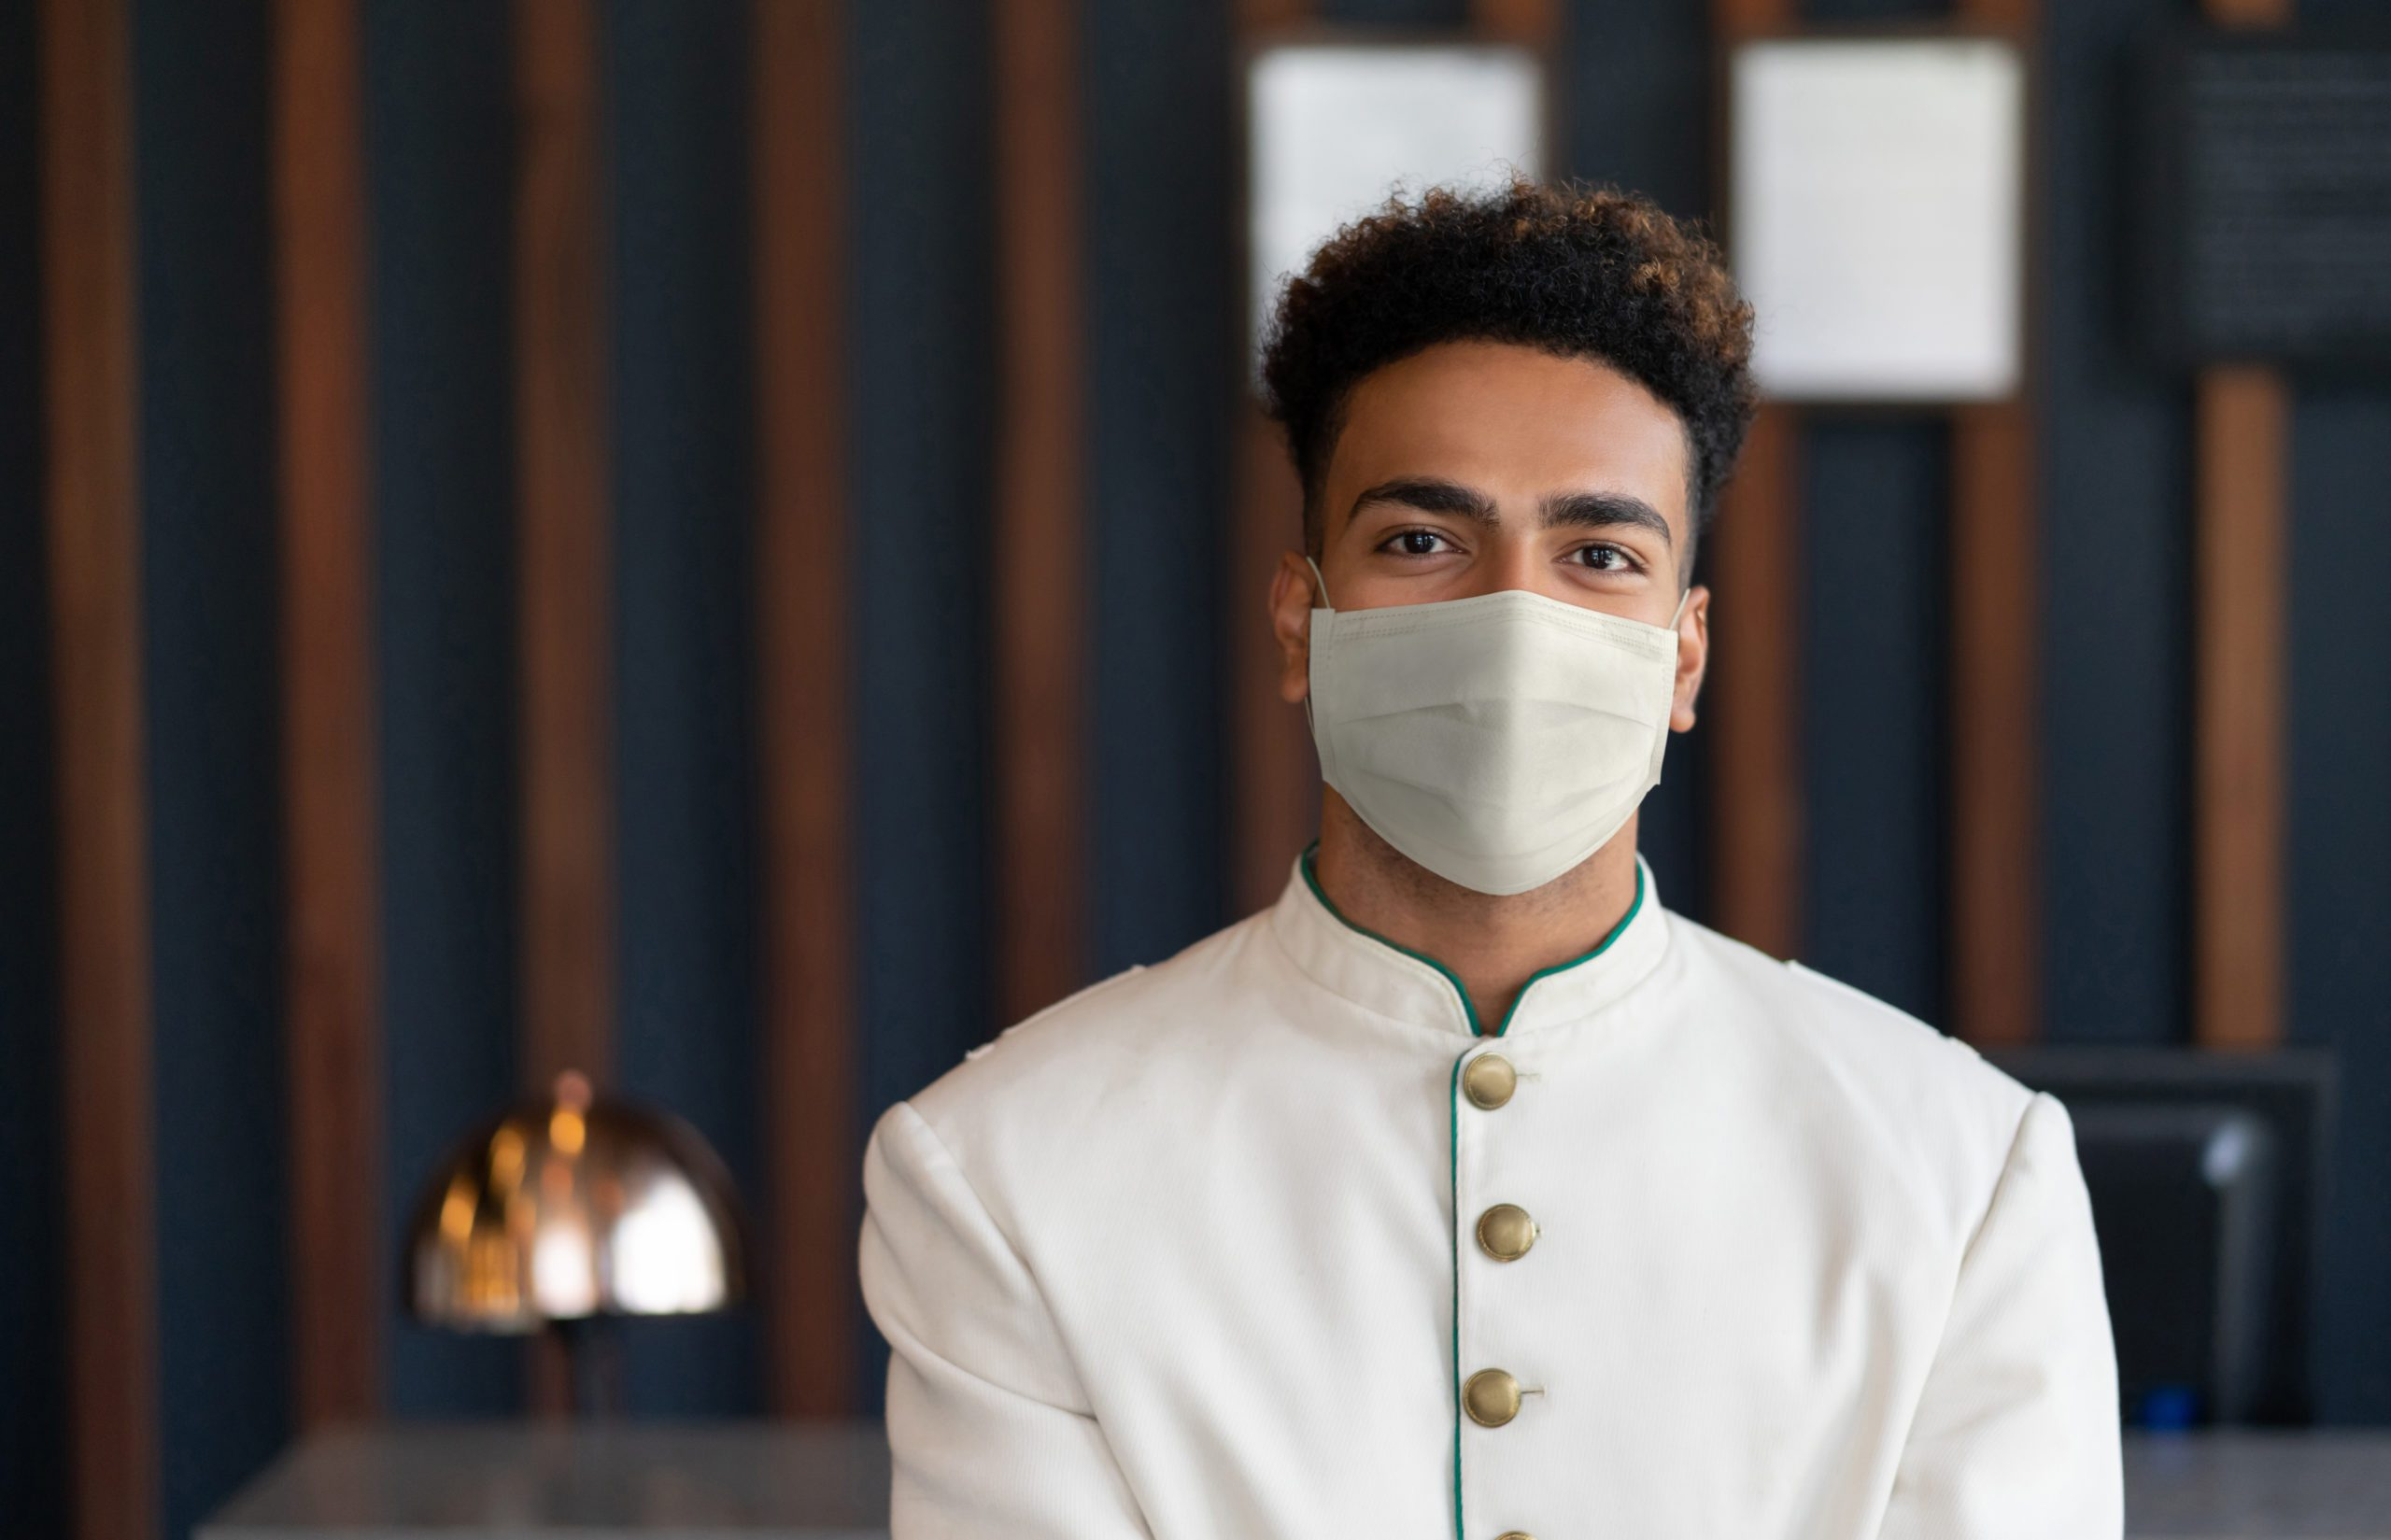 Happy bellhop working at a hotel and wearing a facemask to avoid COVID-19